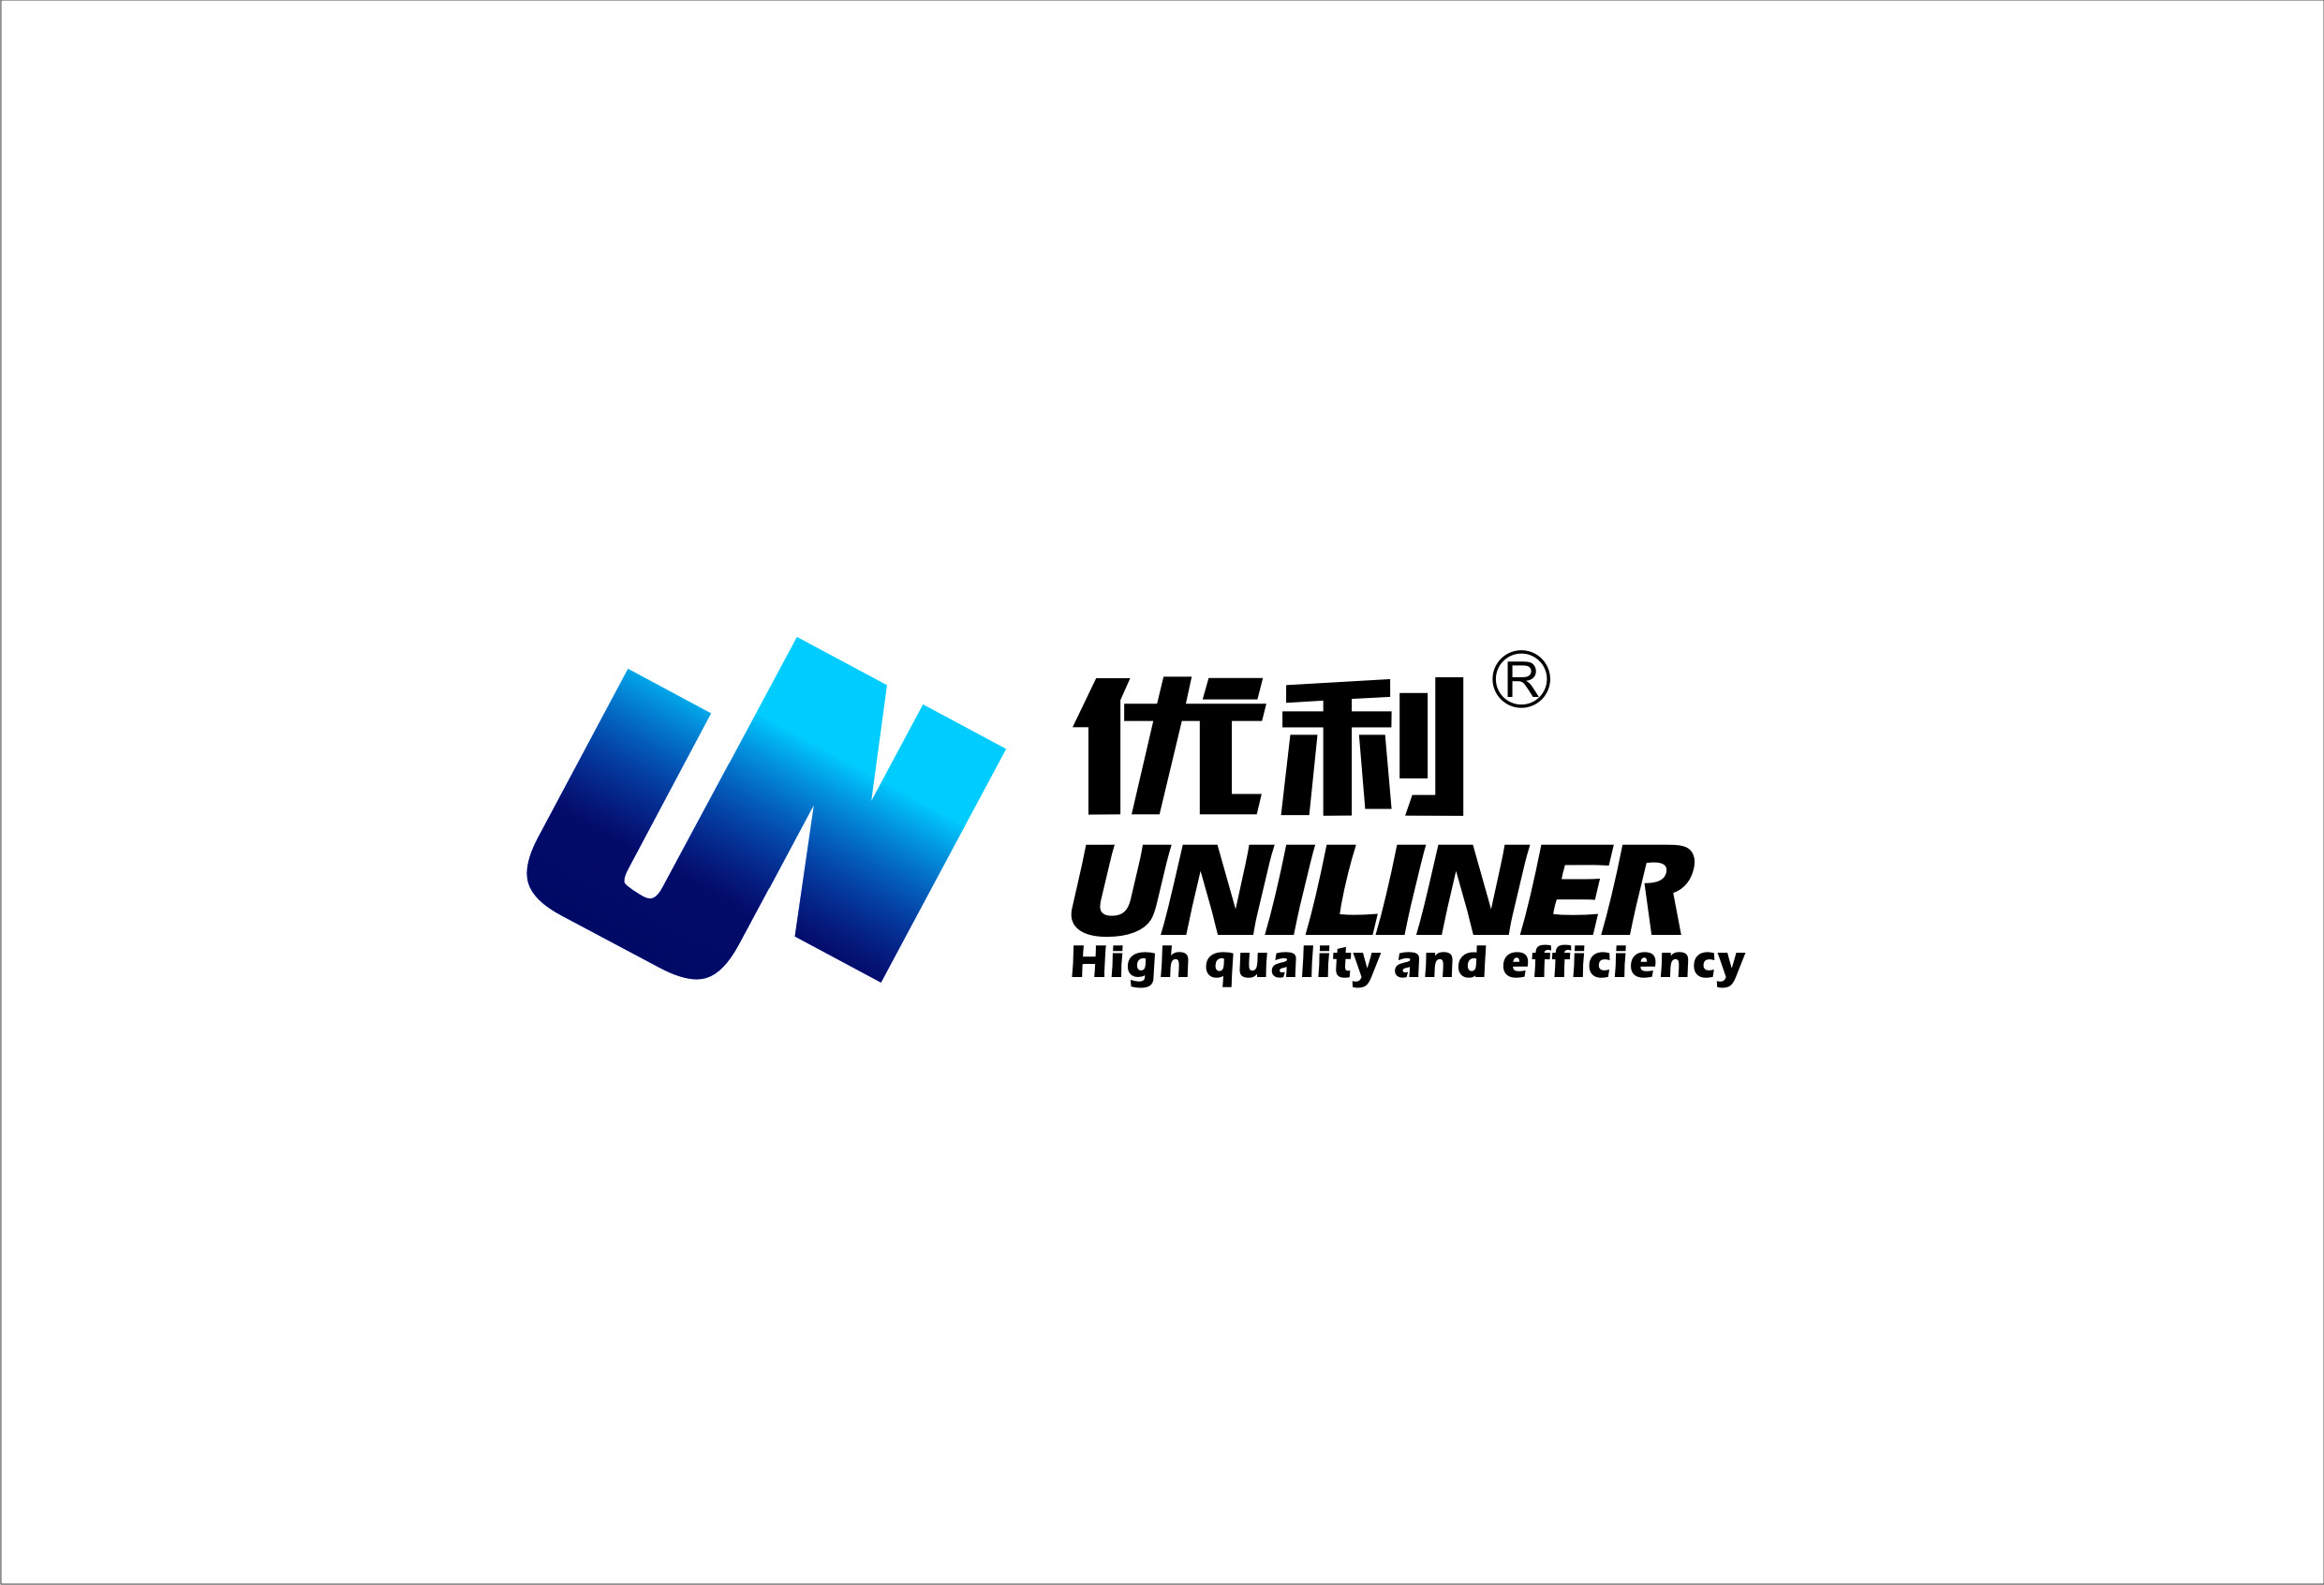 Yantai Uniliner Electrimech Equipment Manufacture Co., Ltd